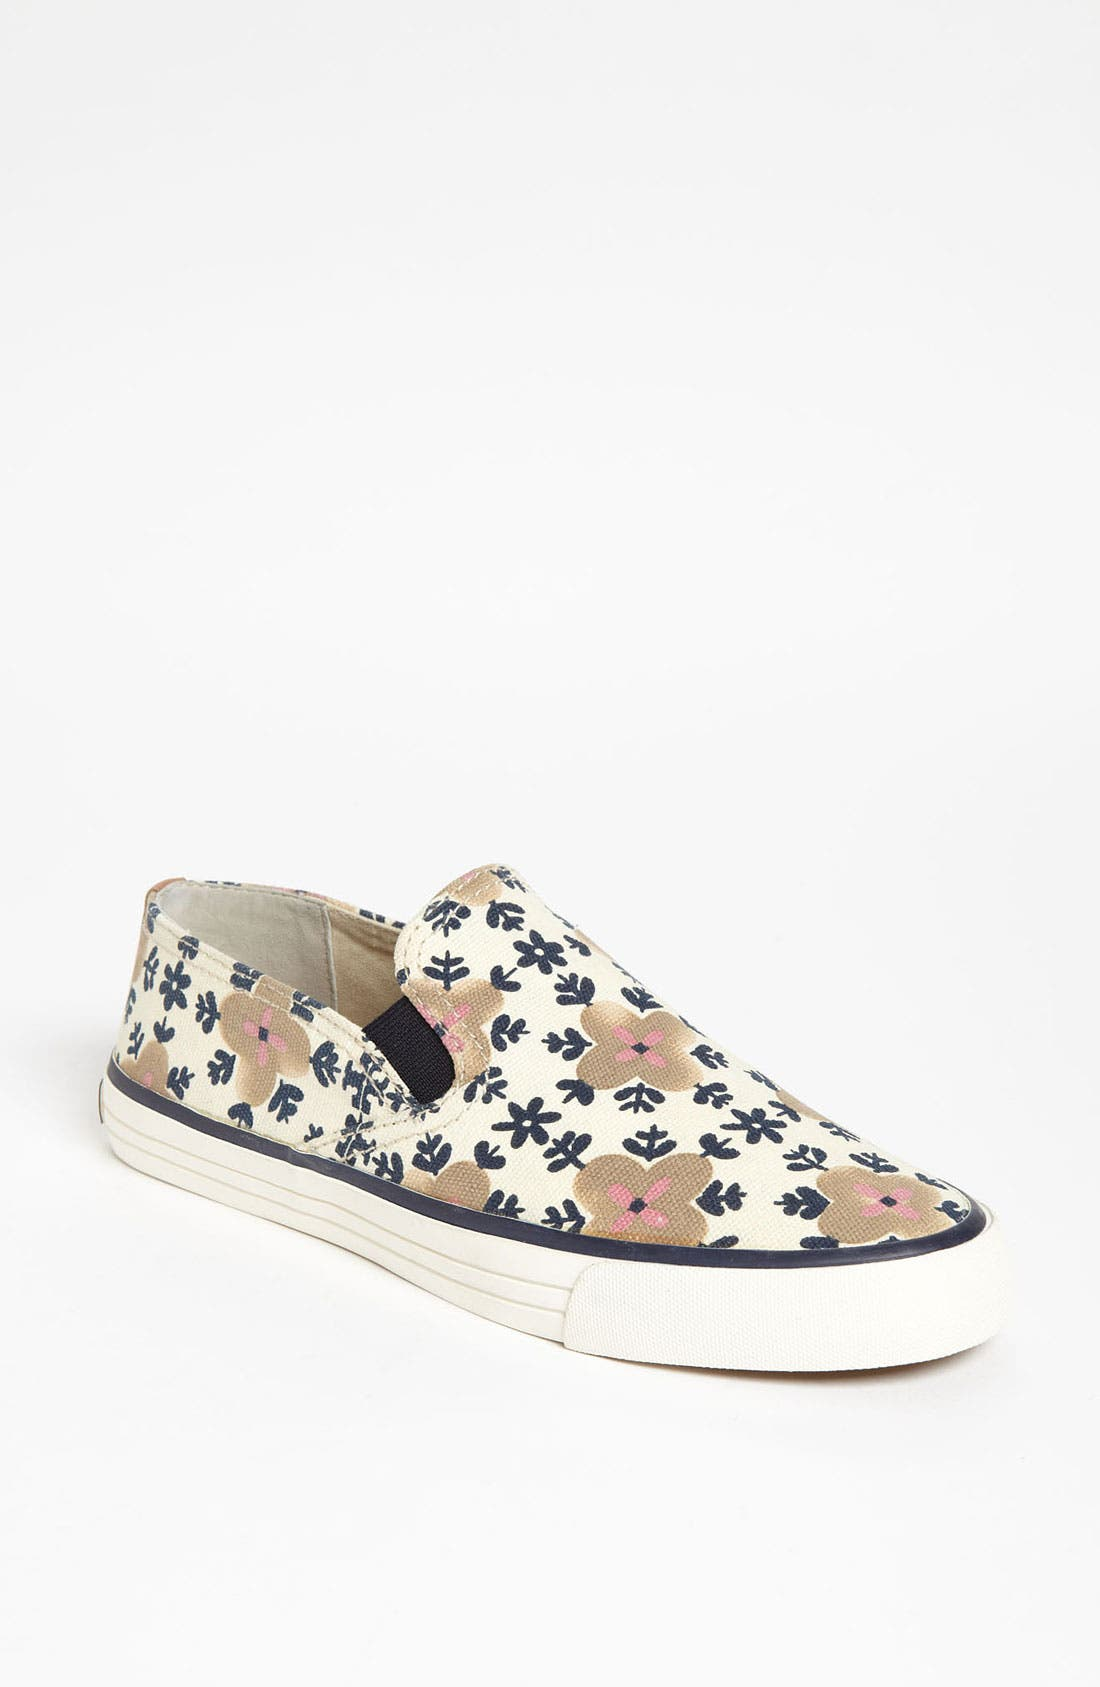 Alternate Image 1 Selected - Tory Burch 'Miles' Sneaker (Women)